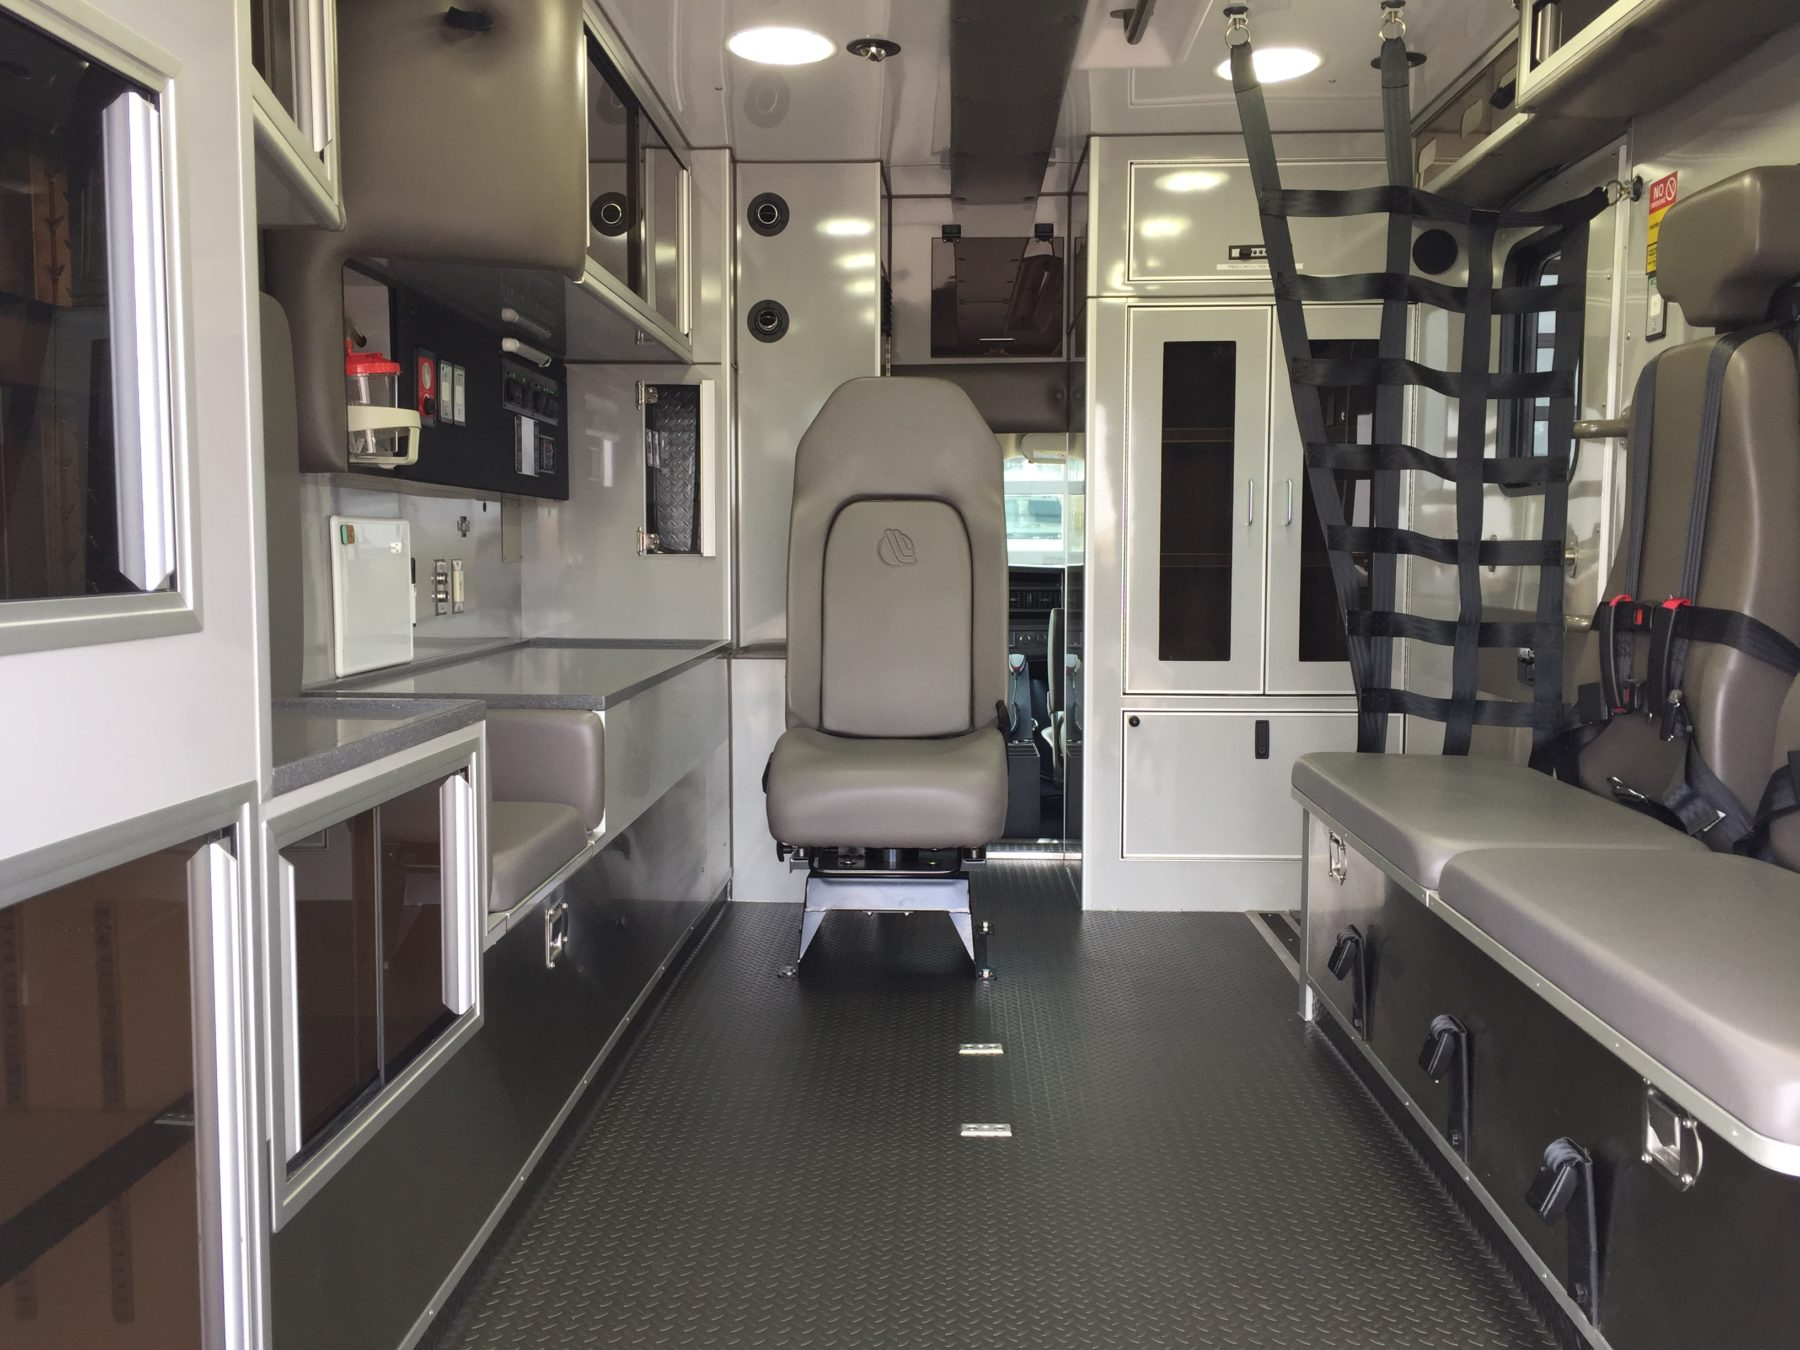 2019 Chevrolet G4500 Type 3 Ambulance For Sale – Picture 2